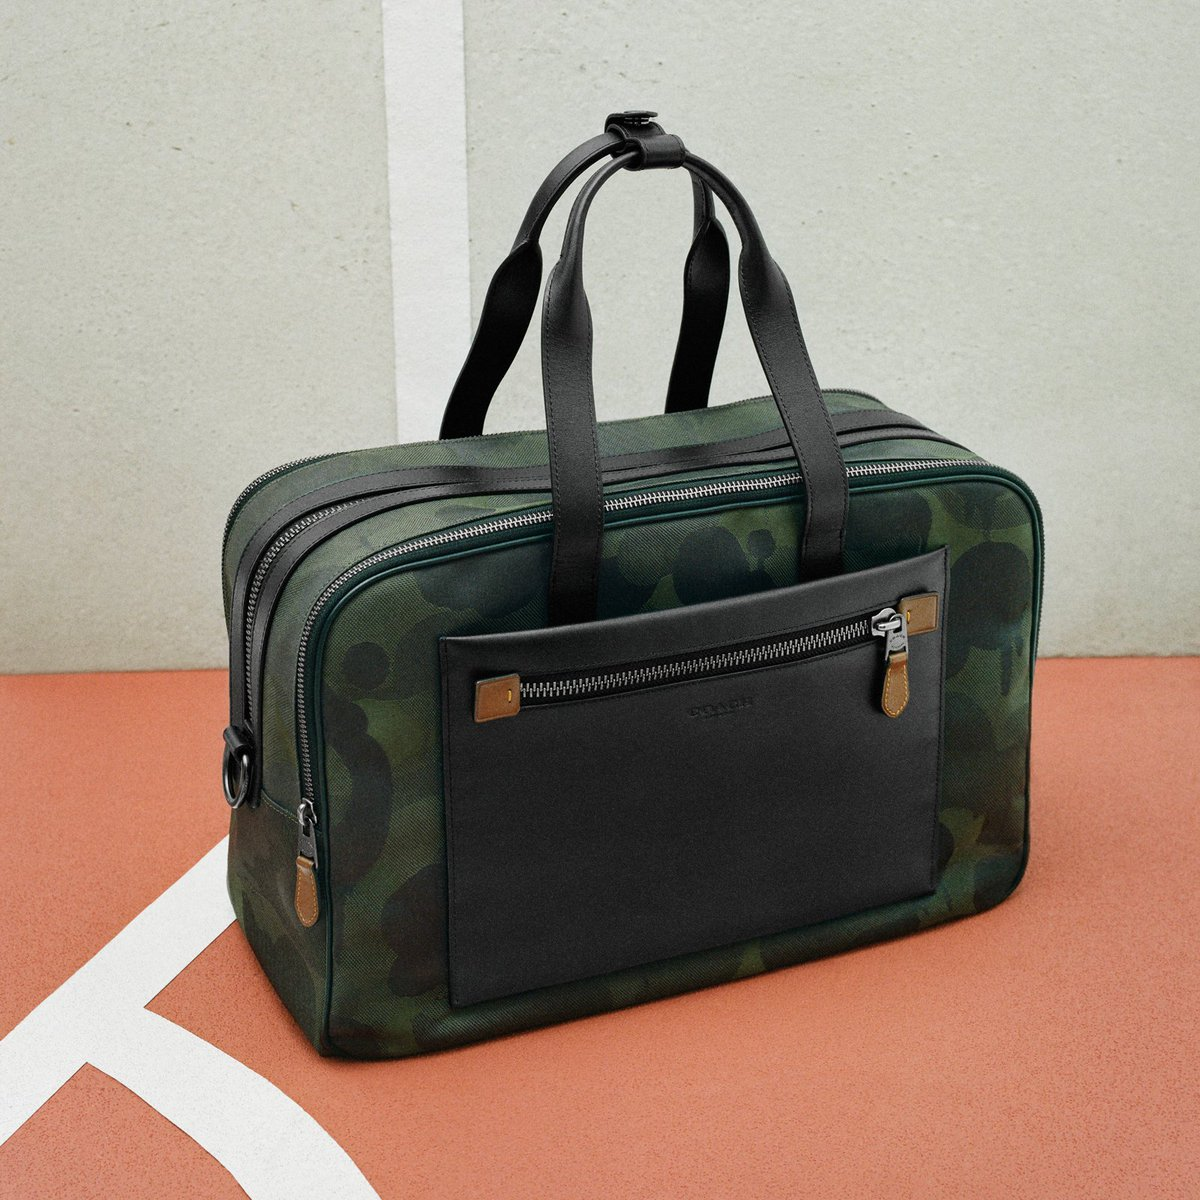 b453efac Get Dad a bag that's road-trip ready (like our Academy Travel Duffle.)  It'll make up for all those backseat singalongs. http://on.coach.com/TravelDuffle  ...